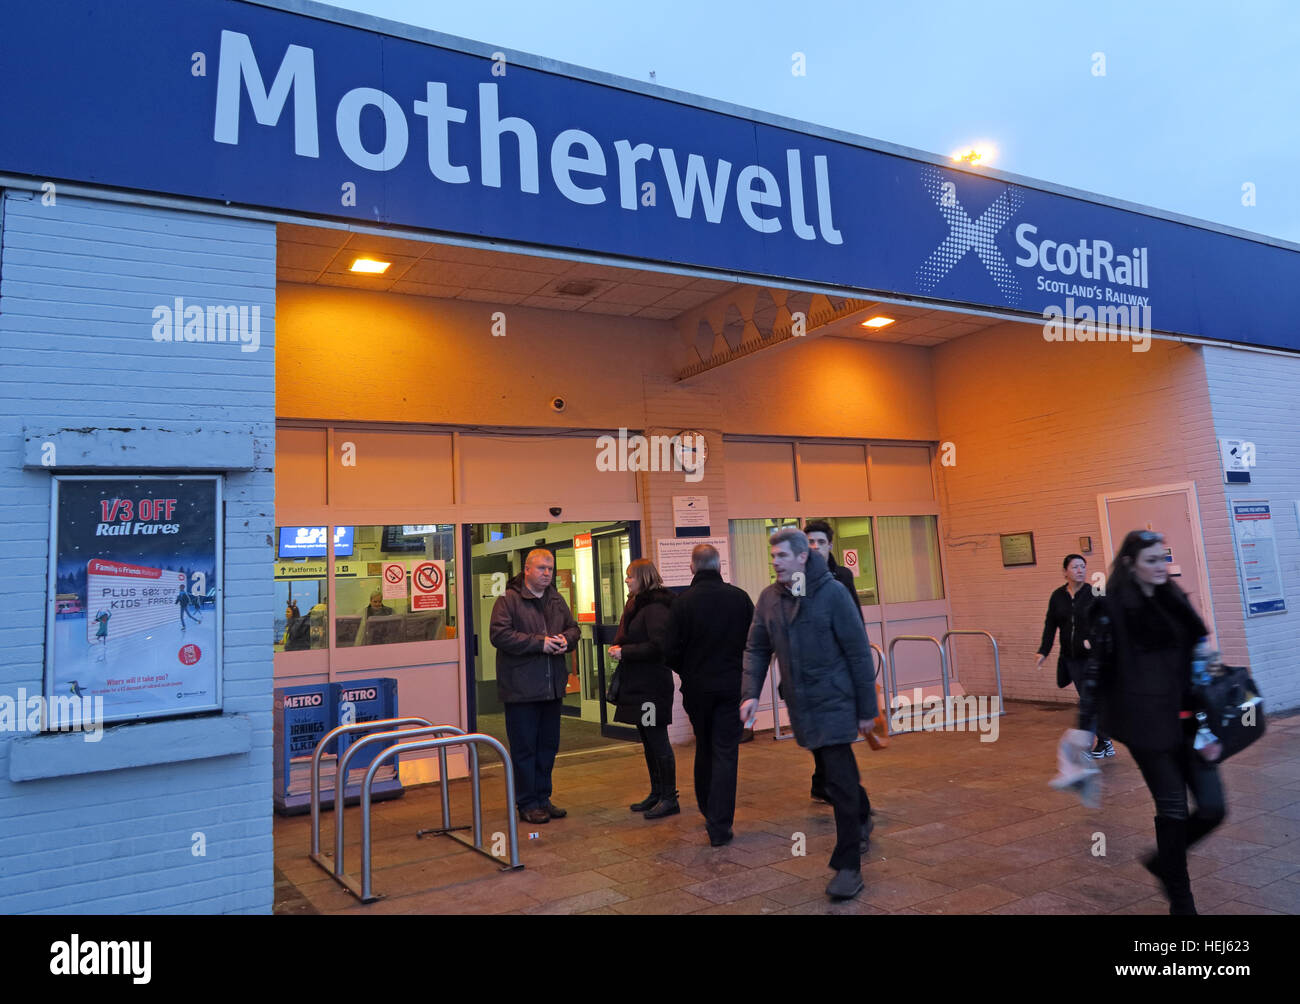 north,Scotland,UK,at,duskScot,rail,train,railway,passengers,commuters,entrance,door,doorway,morning,rush,hour,rushhour,evening,travellers,ML1 1BN,ML1,North Lanarkshire,Muir St,GoTonySmith,@HotpixUK,Tony,Smith,UK,GB,Great,Britain,United,Kingdom,Scots,Scottish,British,Scotland,Motherwell,Greater,problem,with,problem with,issue with,Urban,Urbanist,town,infrastructure,transport,tour,tourism,tourists,urban,attraction,attractions,stations,Buy Pictures of,Buy Images Of,Images of,Stock Images,Tony Smith,United Kingdom,Great Britain,Greater Motherwell,British Isles,Motherwell town Centre,Tobar na Màthar